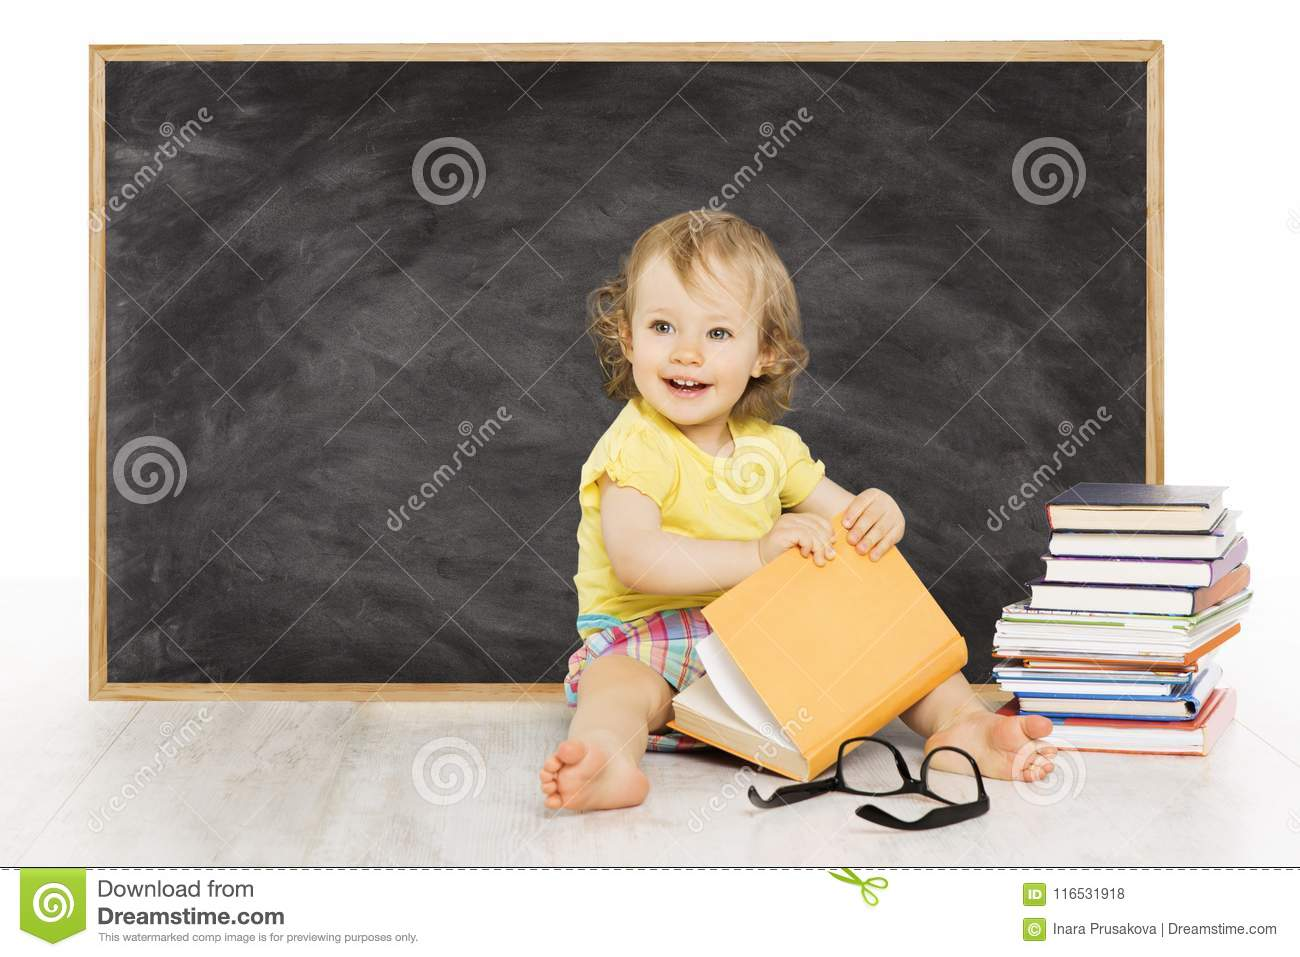 Baby Read Book near Blackboard, Kid School Black Board